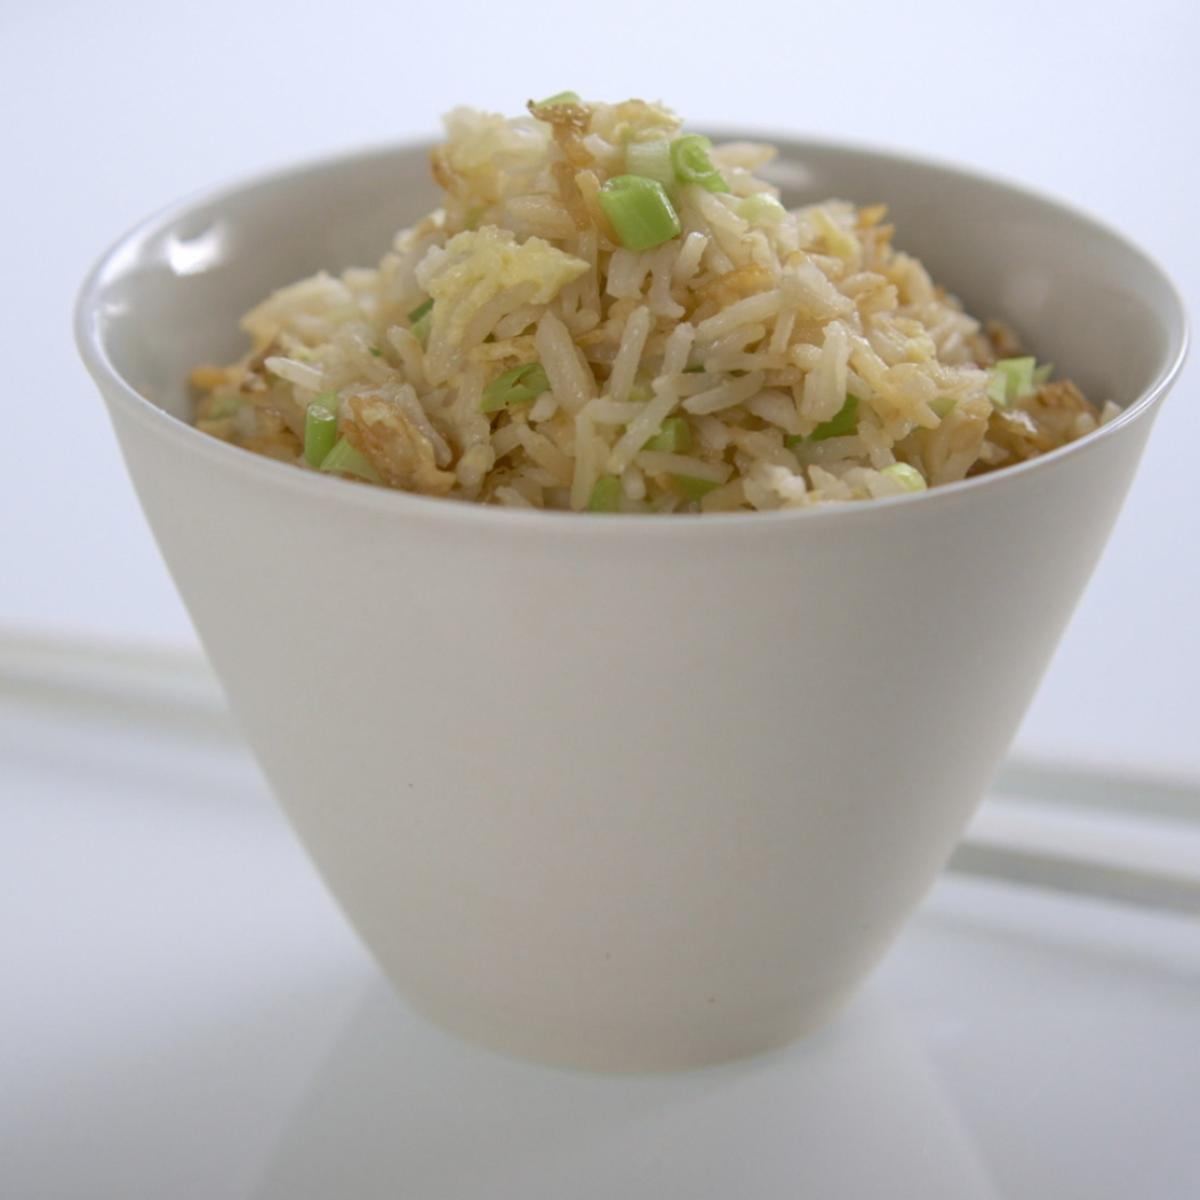 A picture of Delia's Chinese Stir-fried Rice recipe